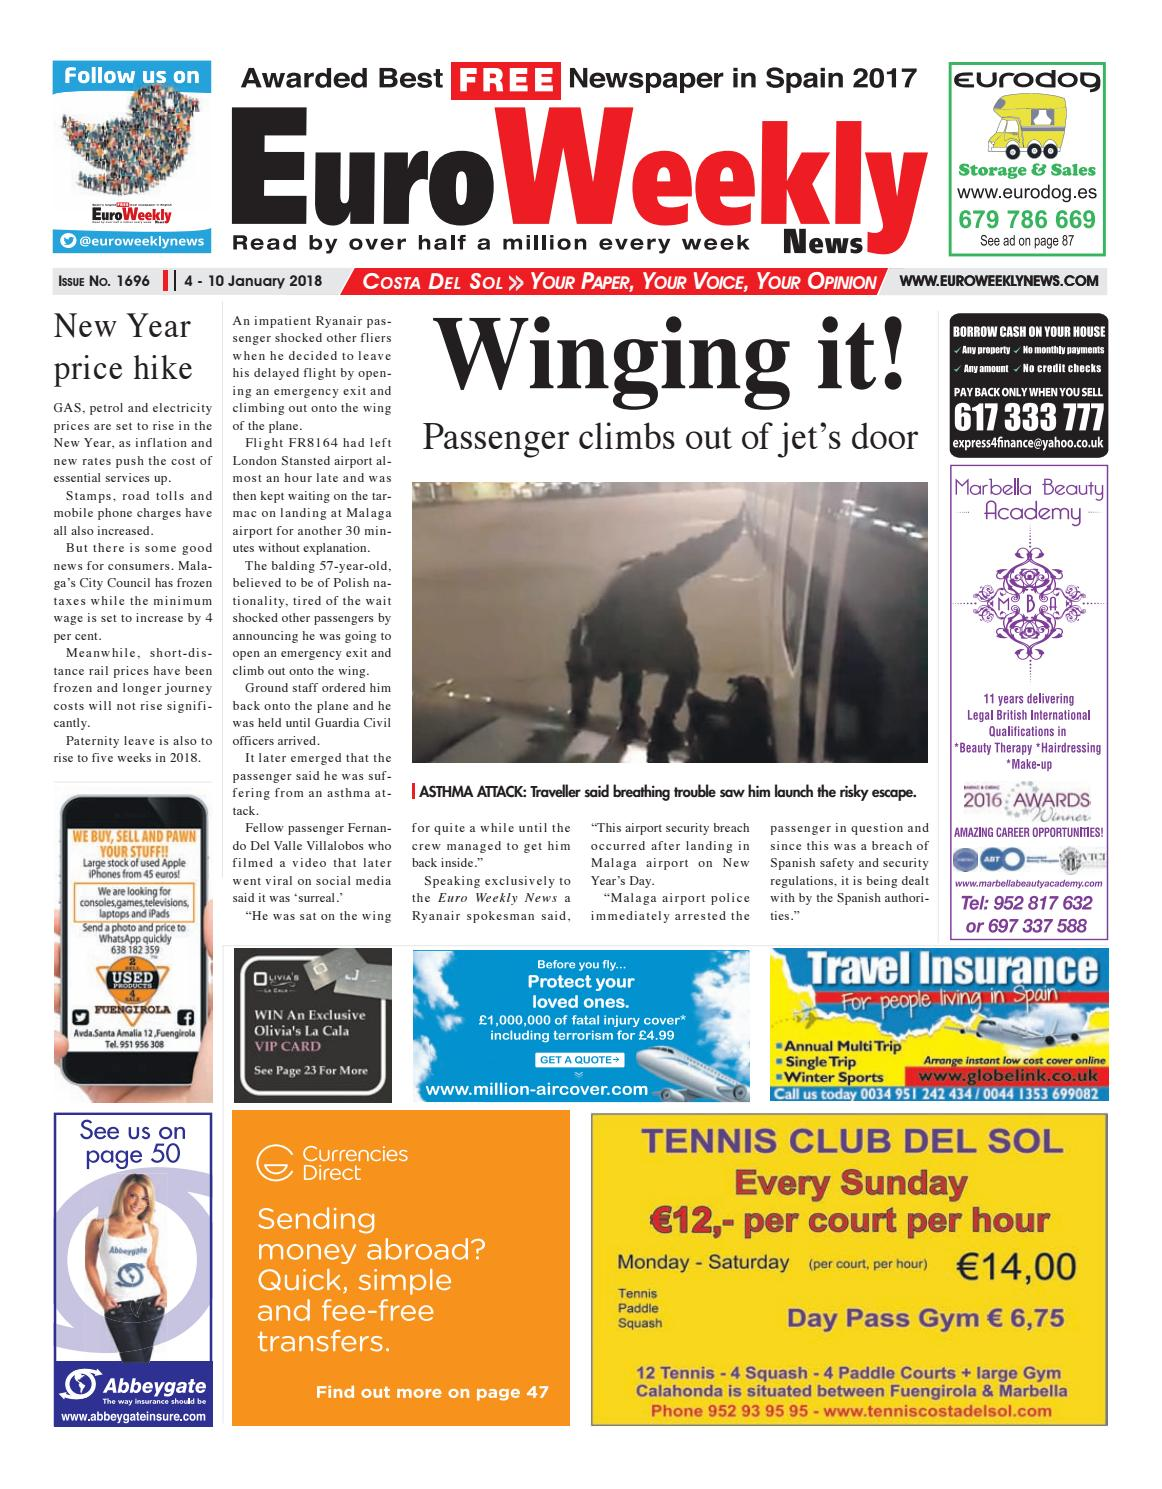 Euro Weekly News Costa Del Sol 21 27 December 2017 Issue 1694  # Fabrica De Muebles Wimpy